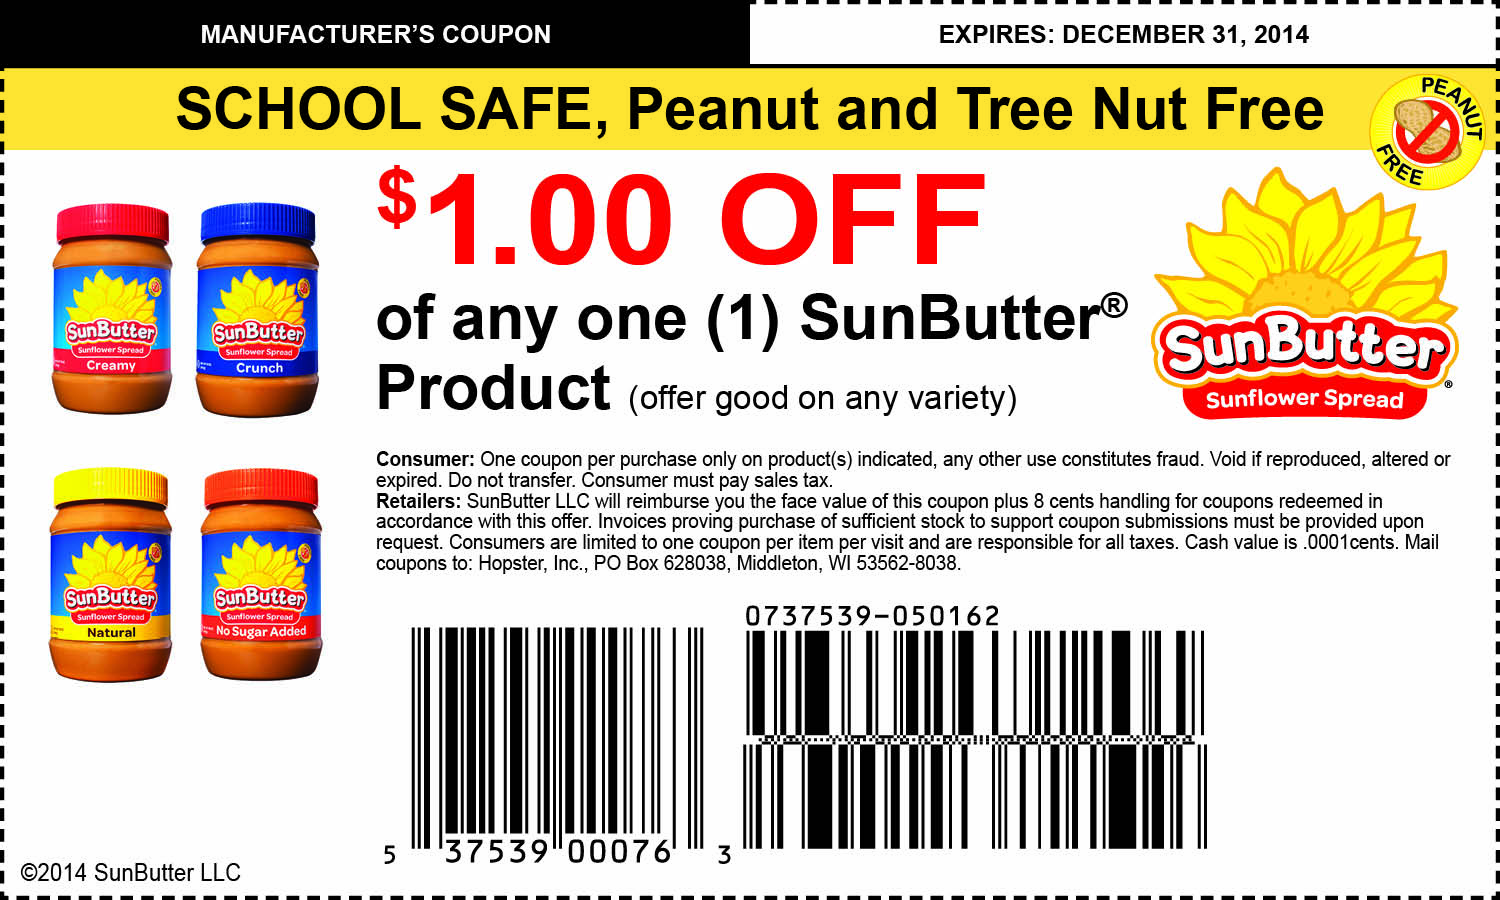 Tags: coupon inserts, grocery coupons, insert schedule, sunday coupon insert preview, sunday coupons, sunday coupons preview, printable grocery coupons, free food coupons, manufacturer coupons, coupons for food, diaper coupons, free grocery coupons, coupons for groceries, printable manufacturer coupons, free coupons for groceries, coupon app.